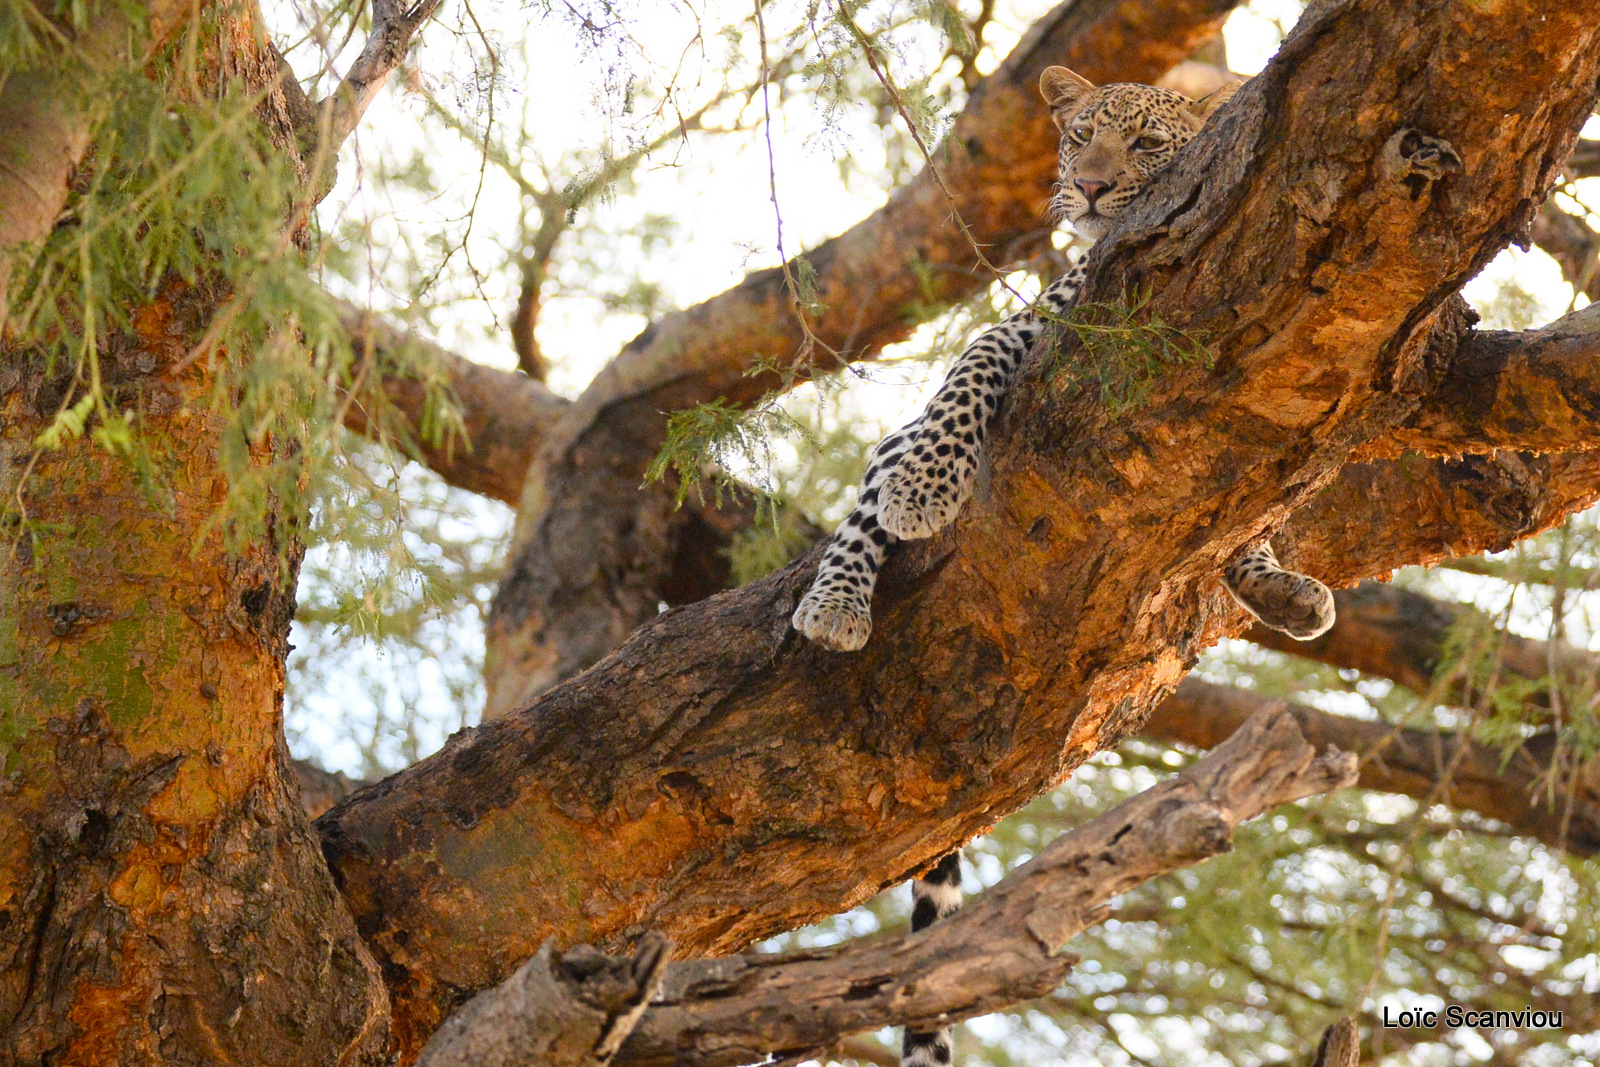 Léopard dans un arbre/Leopard on a tree (5)